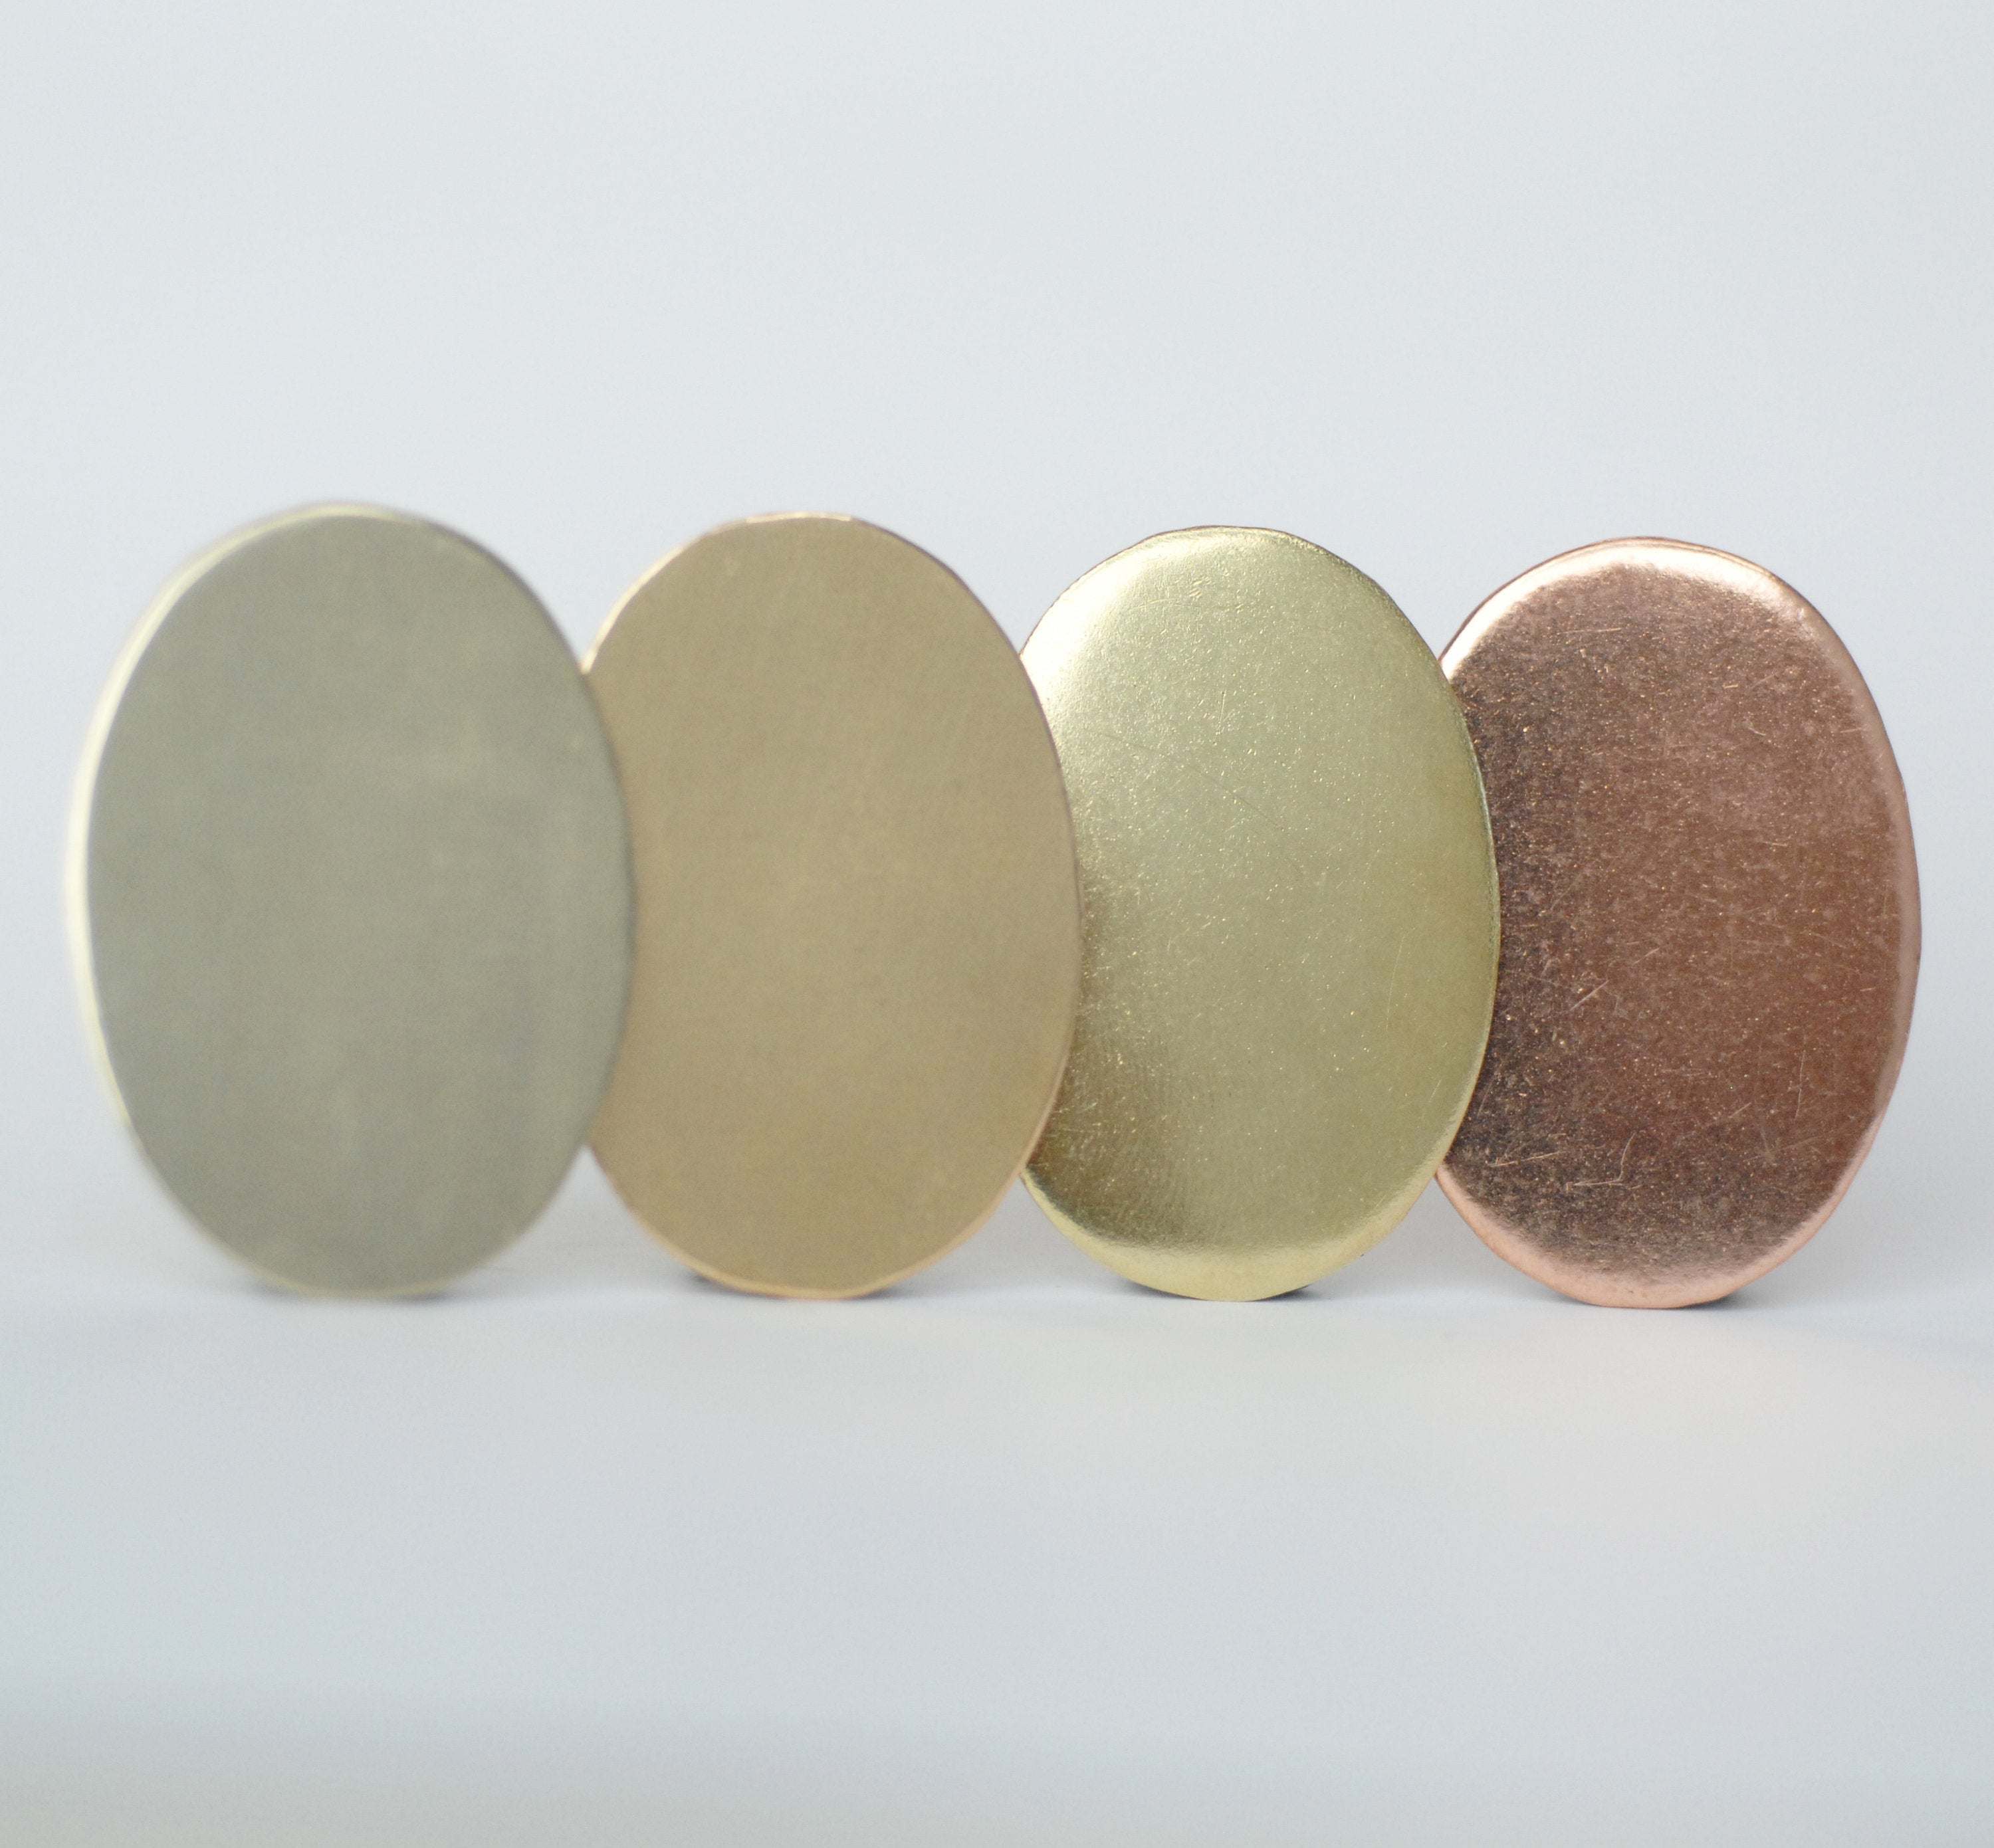 Oval shape 27mm x 38mm metal blanks for making jewelry